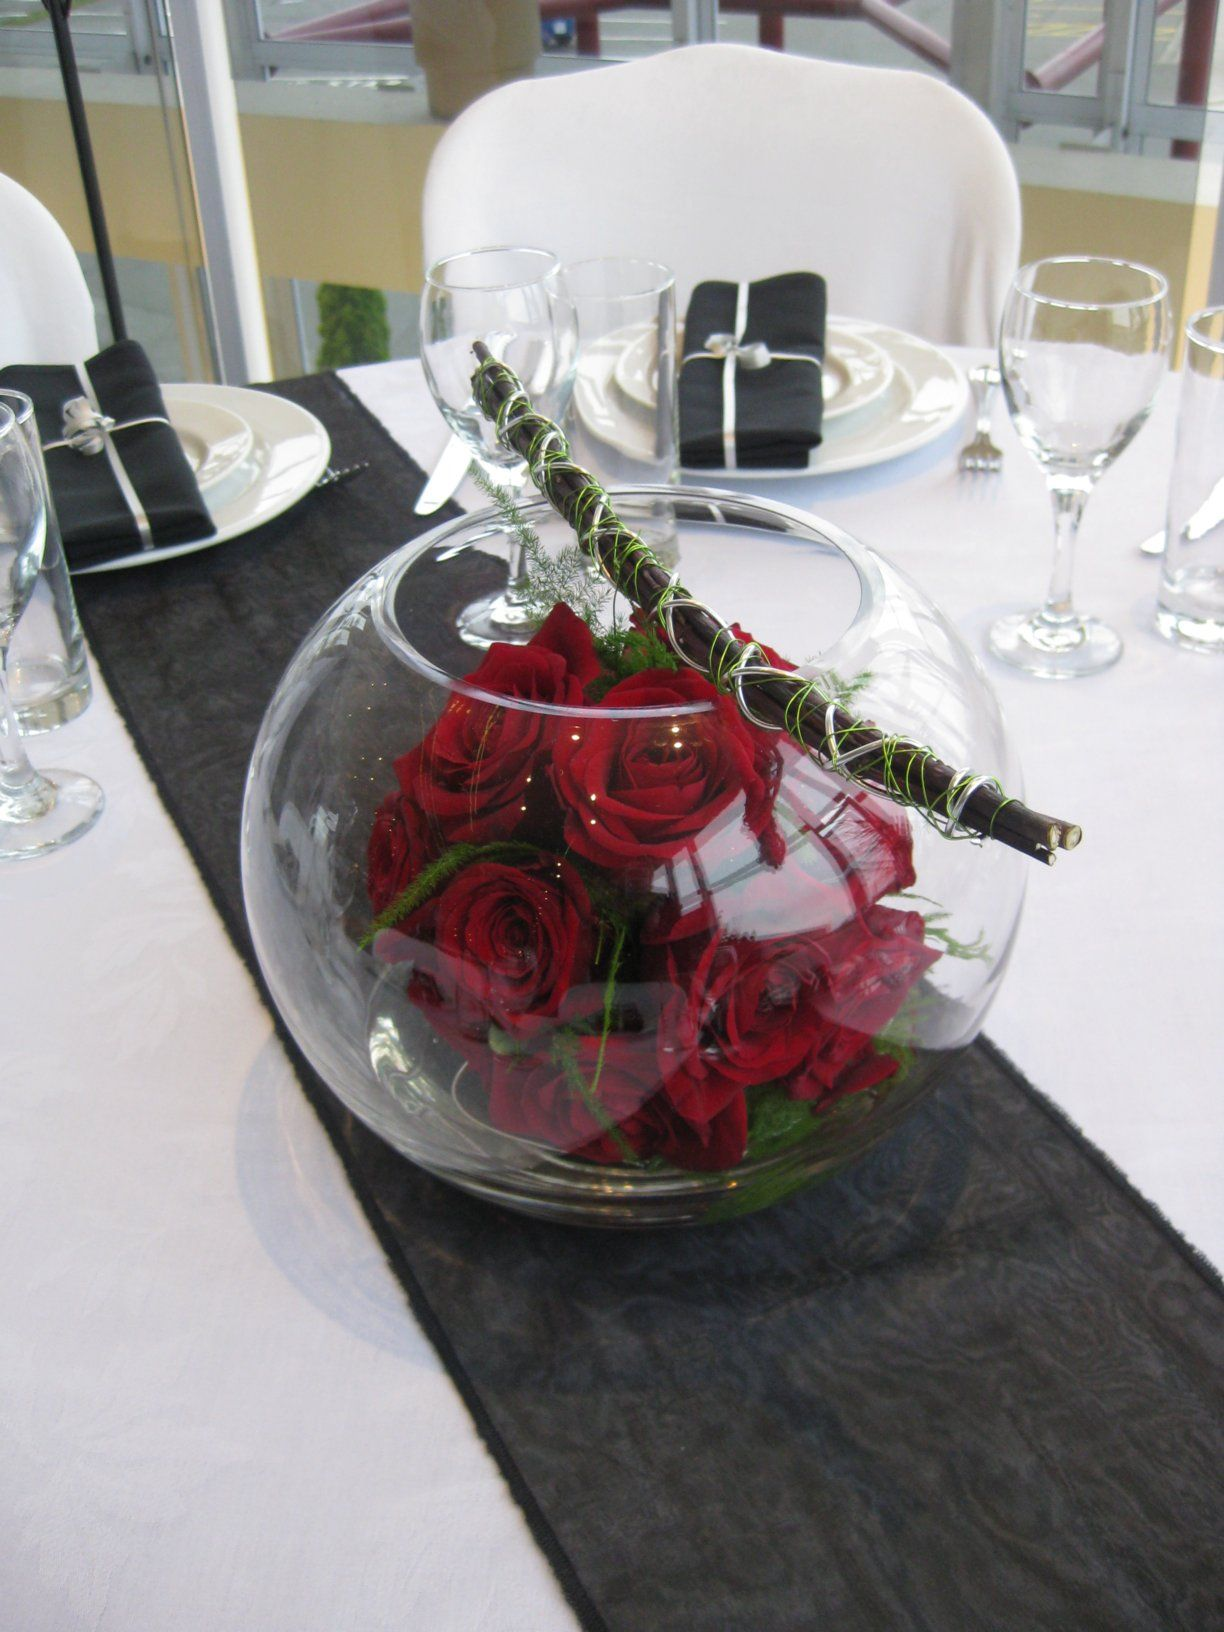 Cool Fish Bowl Wedding Centerpieces Diy With Seats Red Wedding